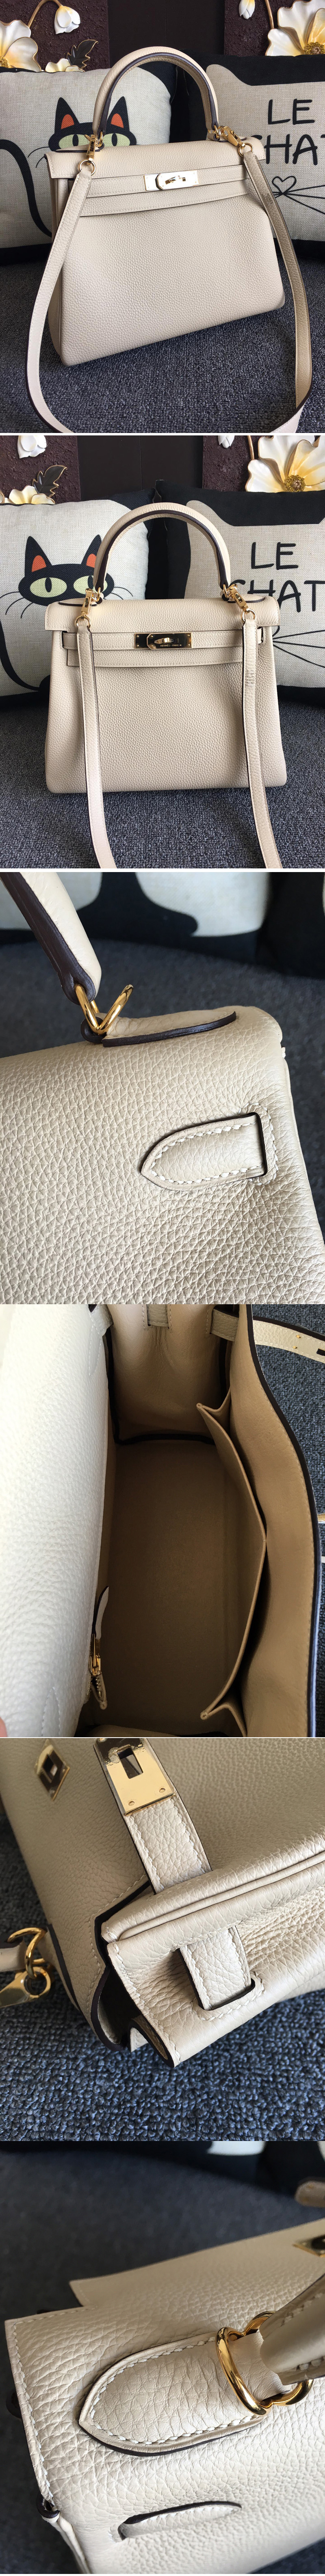 Replica Hermes Kelly 28cm Bag Full Handmade in Original Cream Togo Leather With Silver Buckle